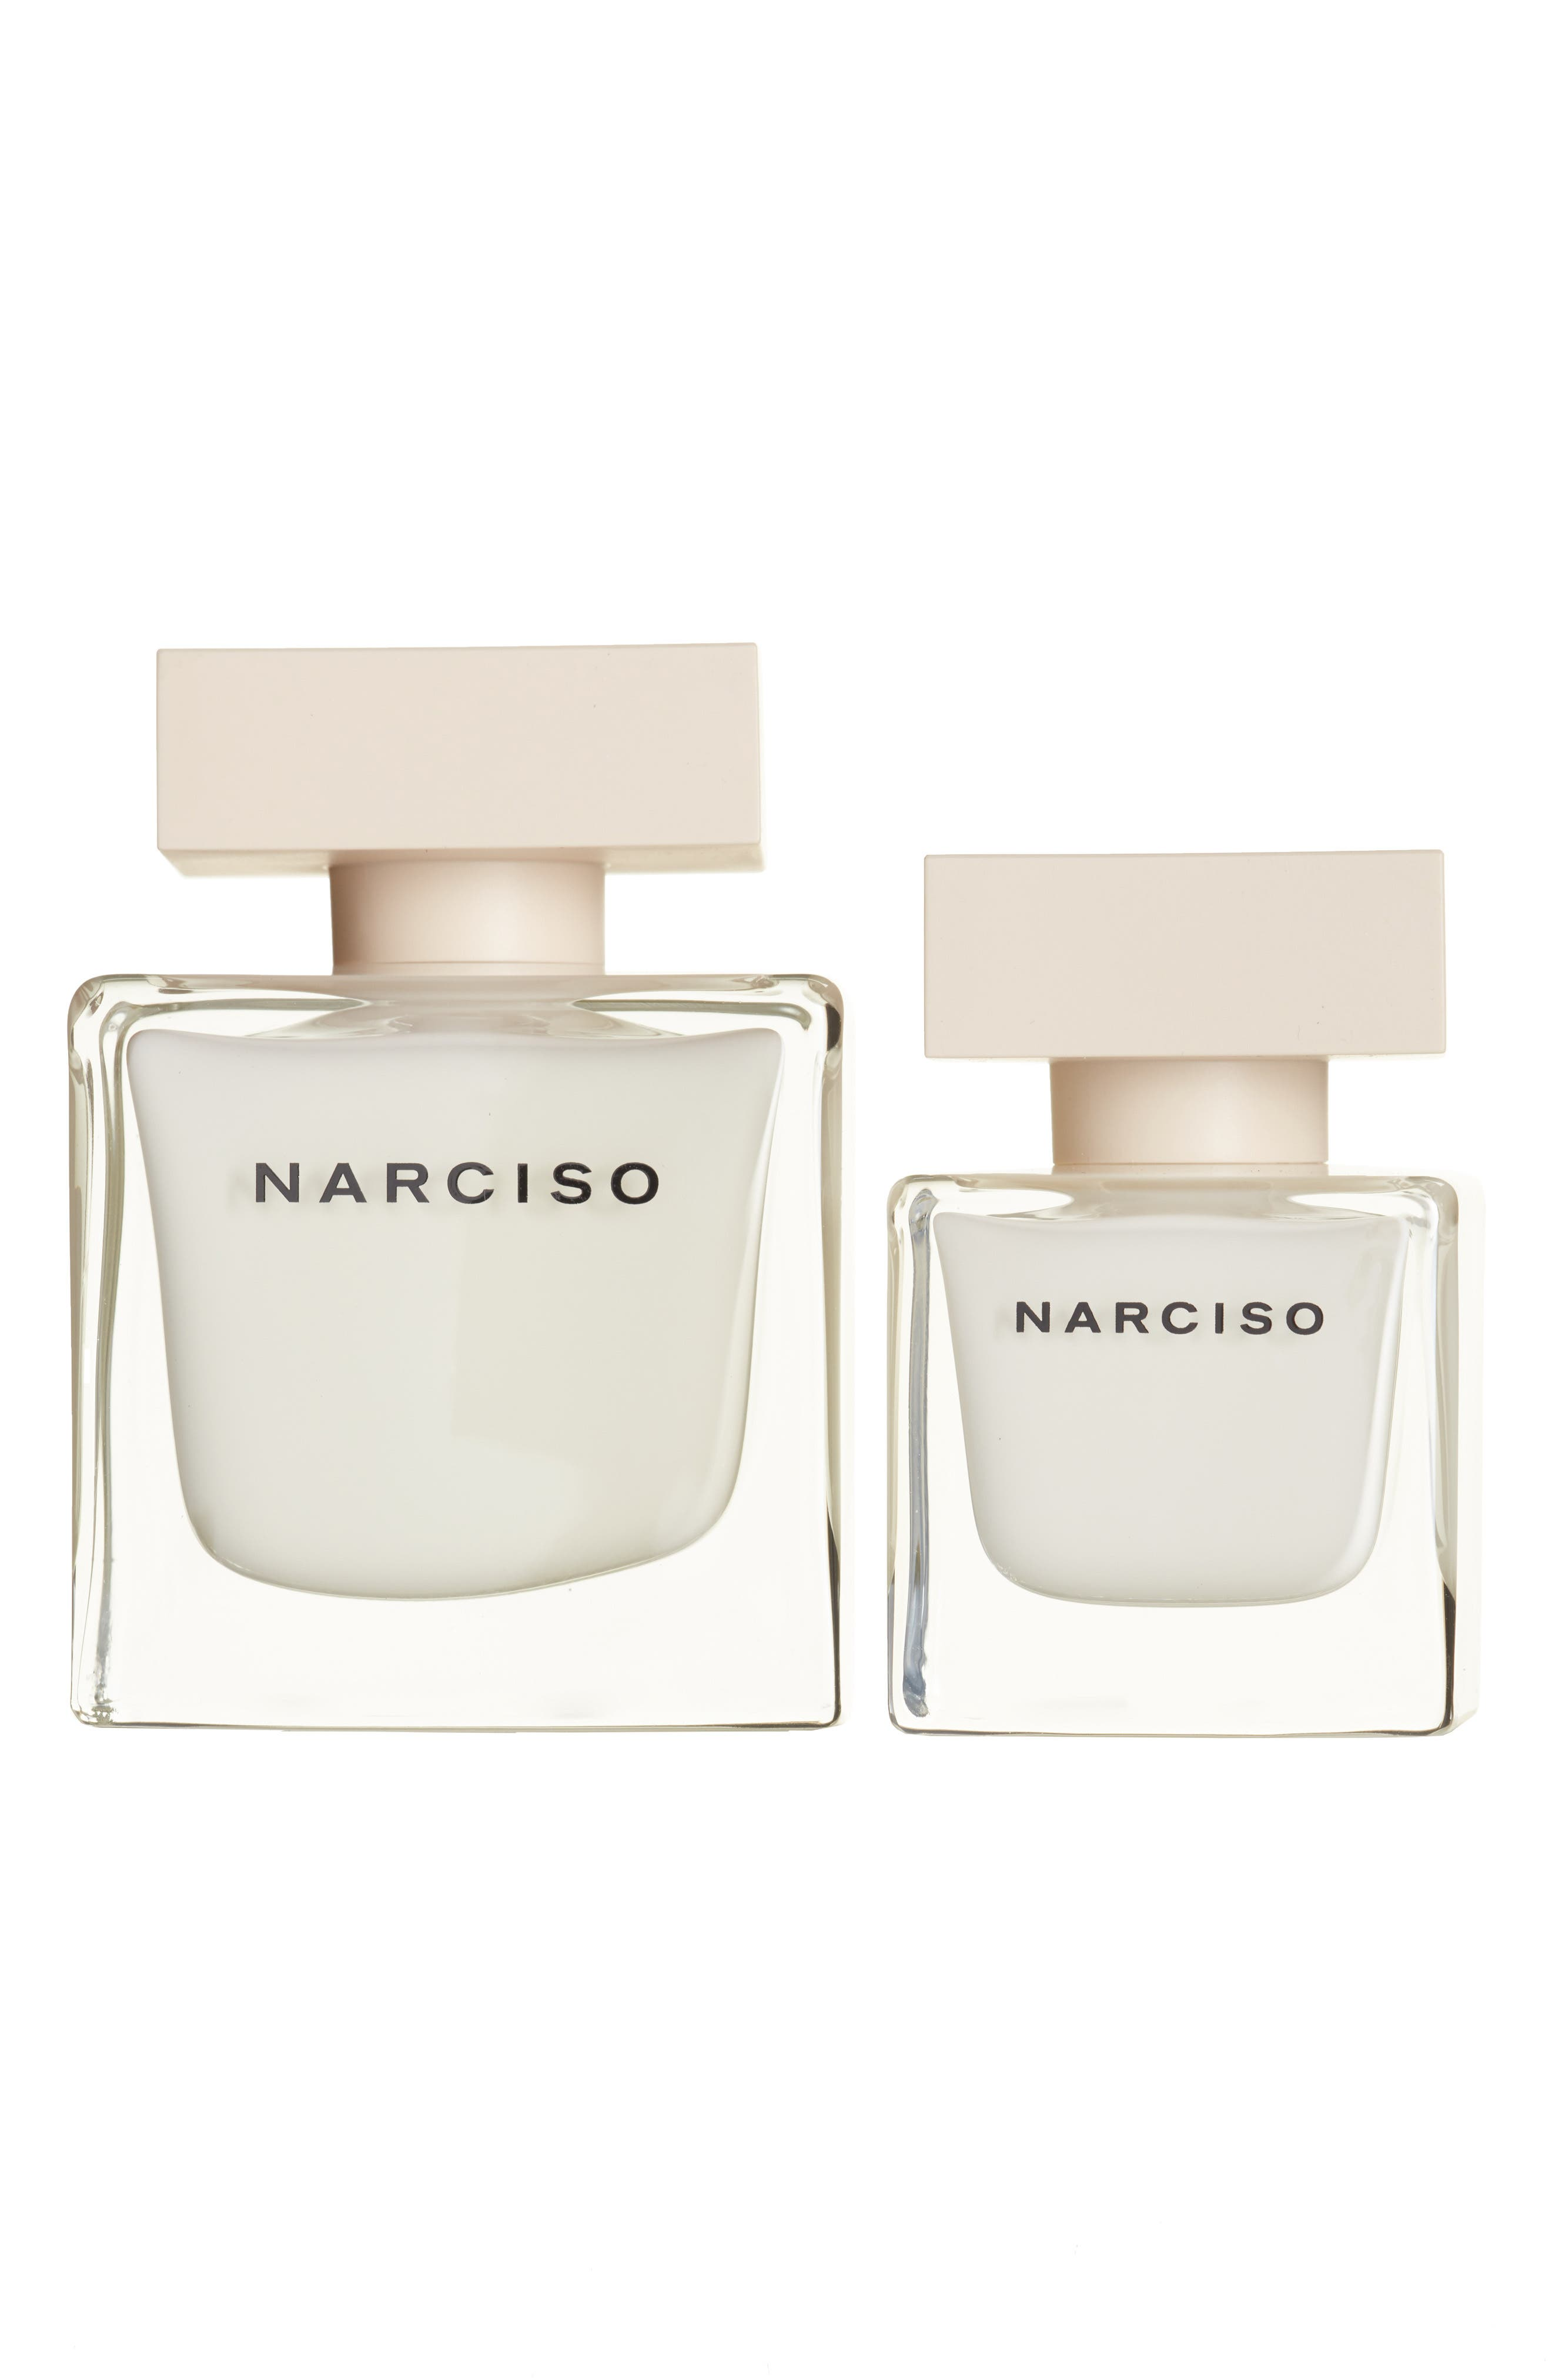 Narciso Rodrigeuz Narciso Eau de Parfum Set ($177 Value)